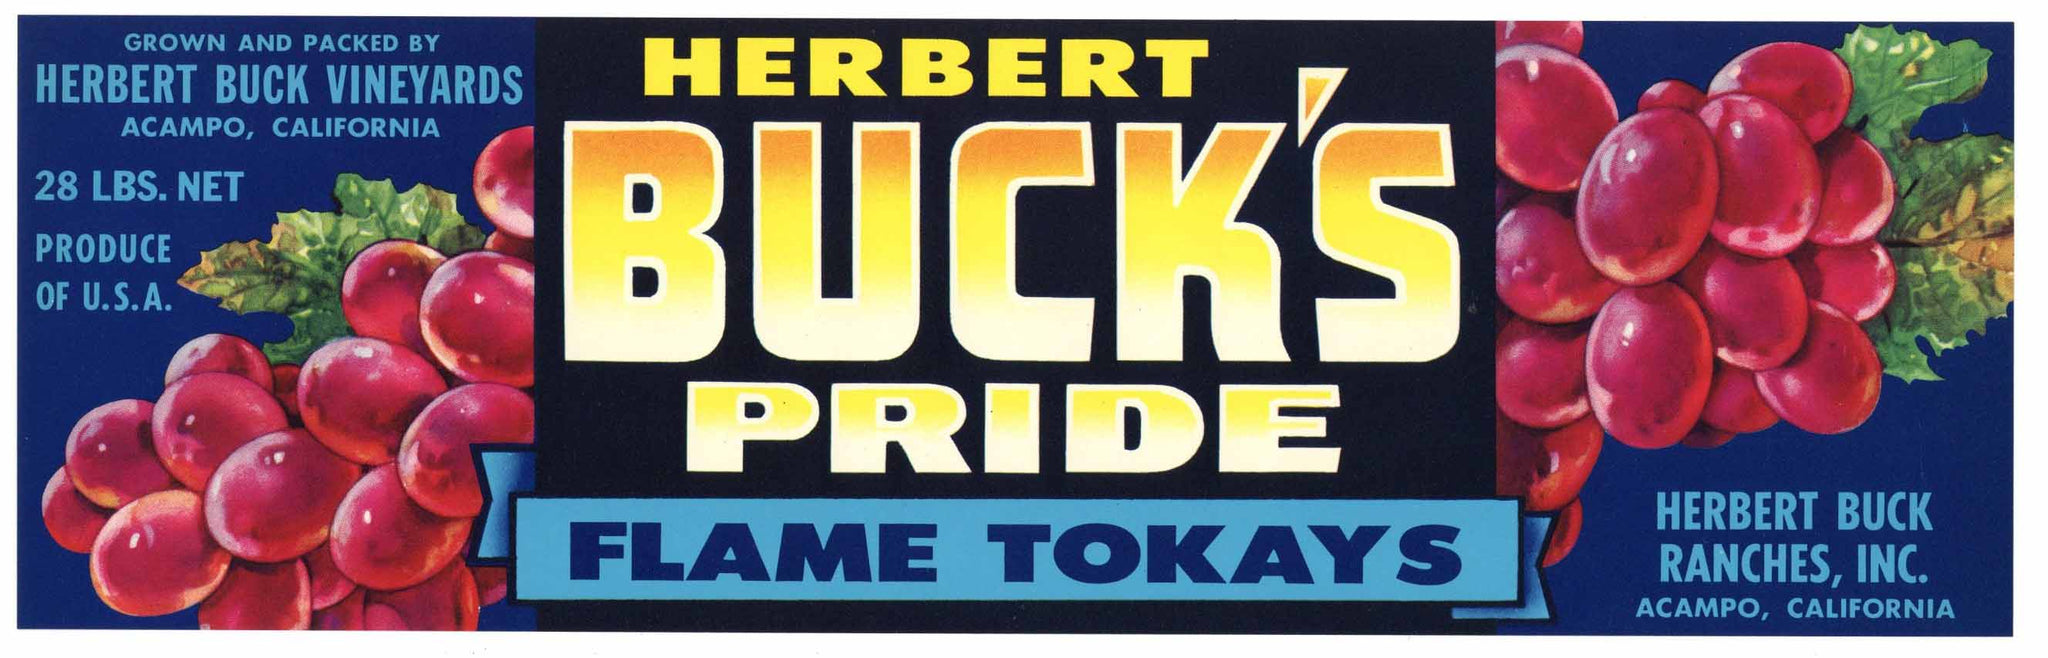 Buck's Pride Brand Vintage Acampo Grape Crate Label, flame tokay